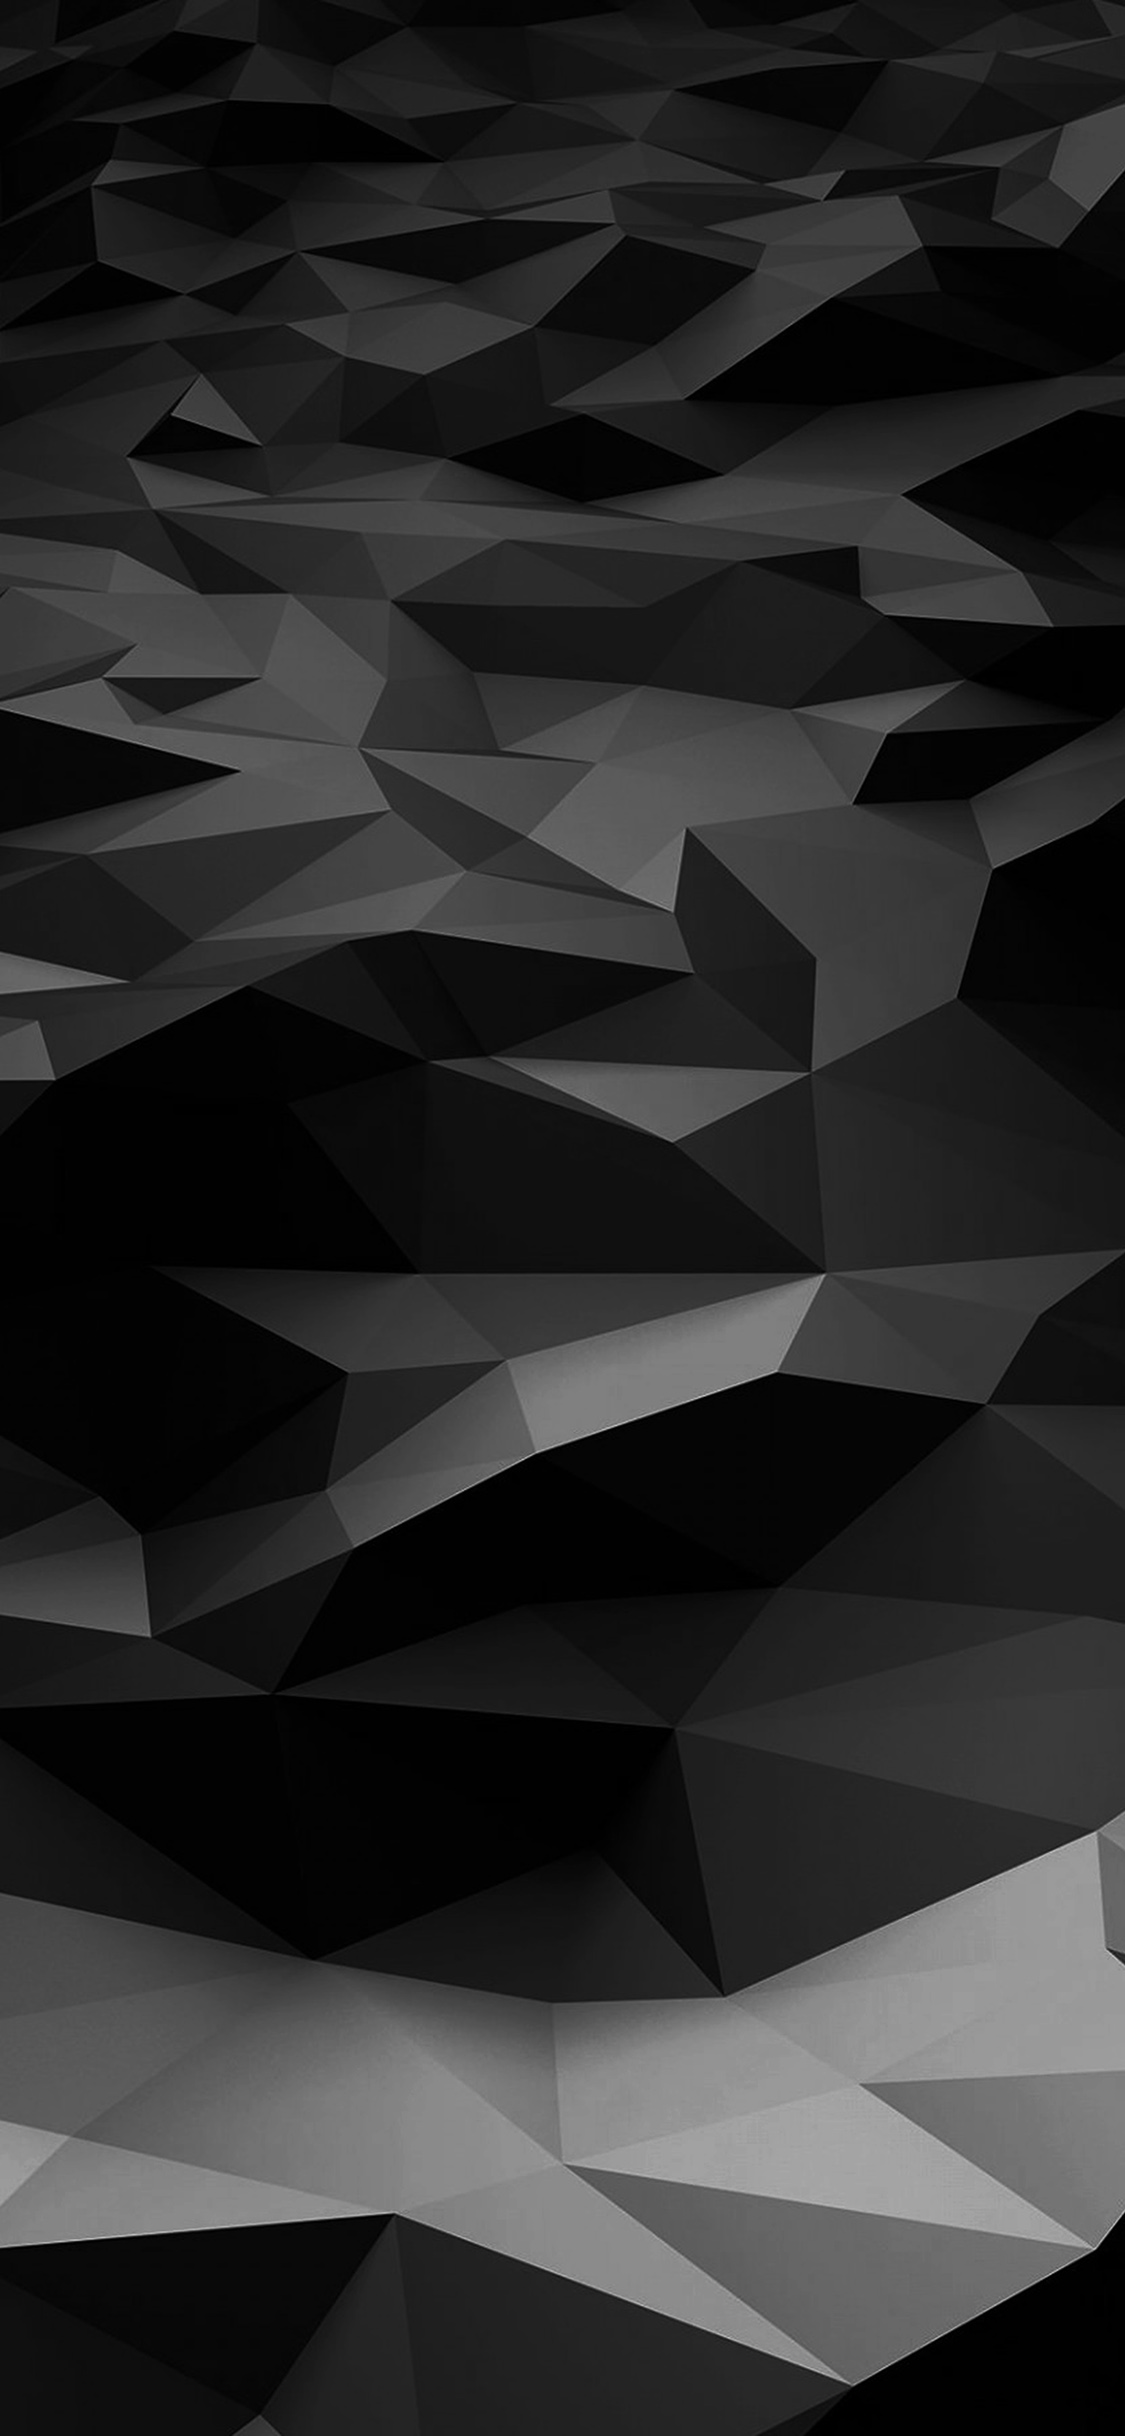 iPhoneXpapers.com-Apple-iPhone-wallpaper-vj29-low-poly-art-dark-bw-pattern